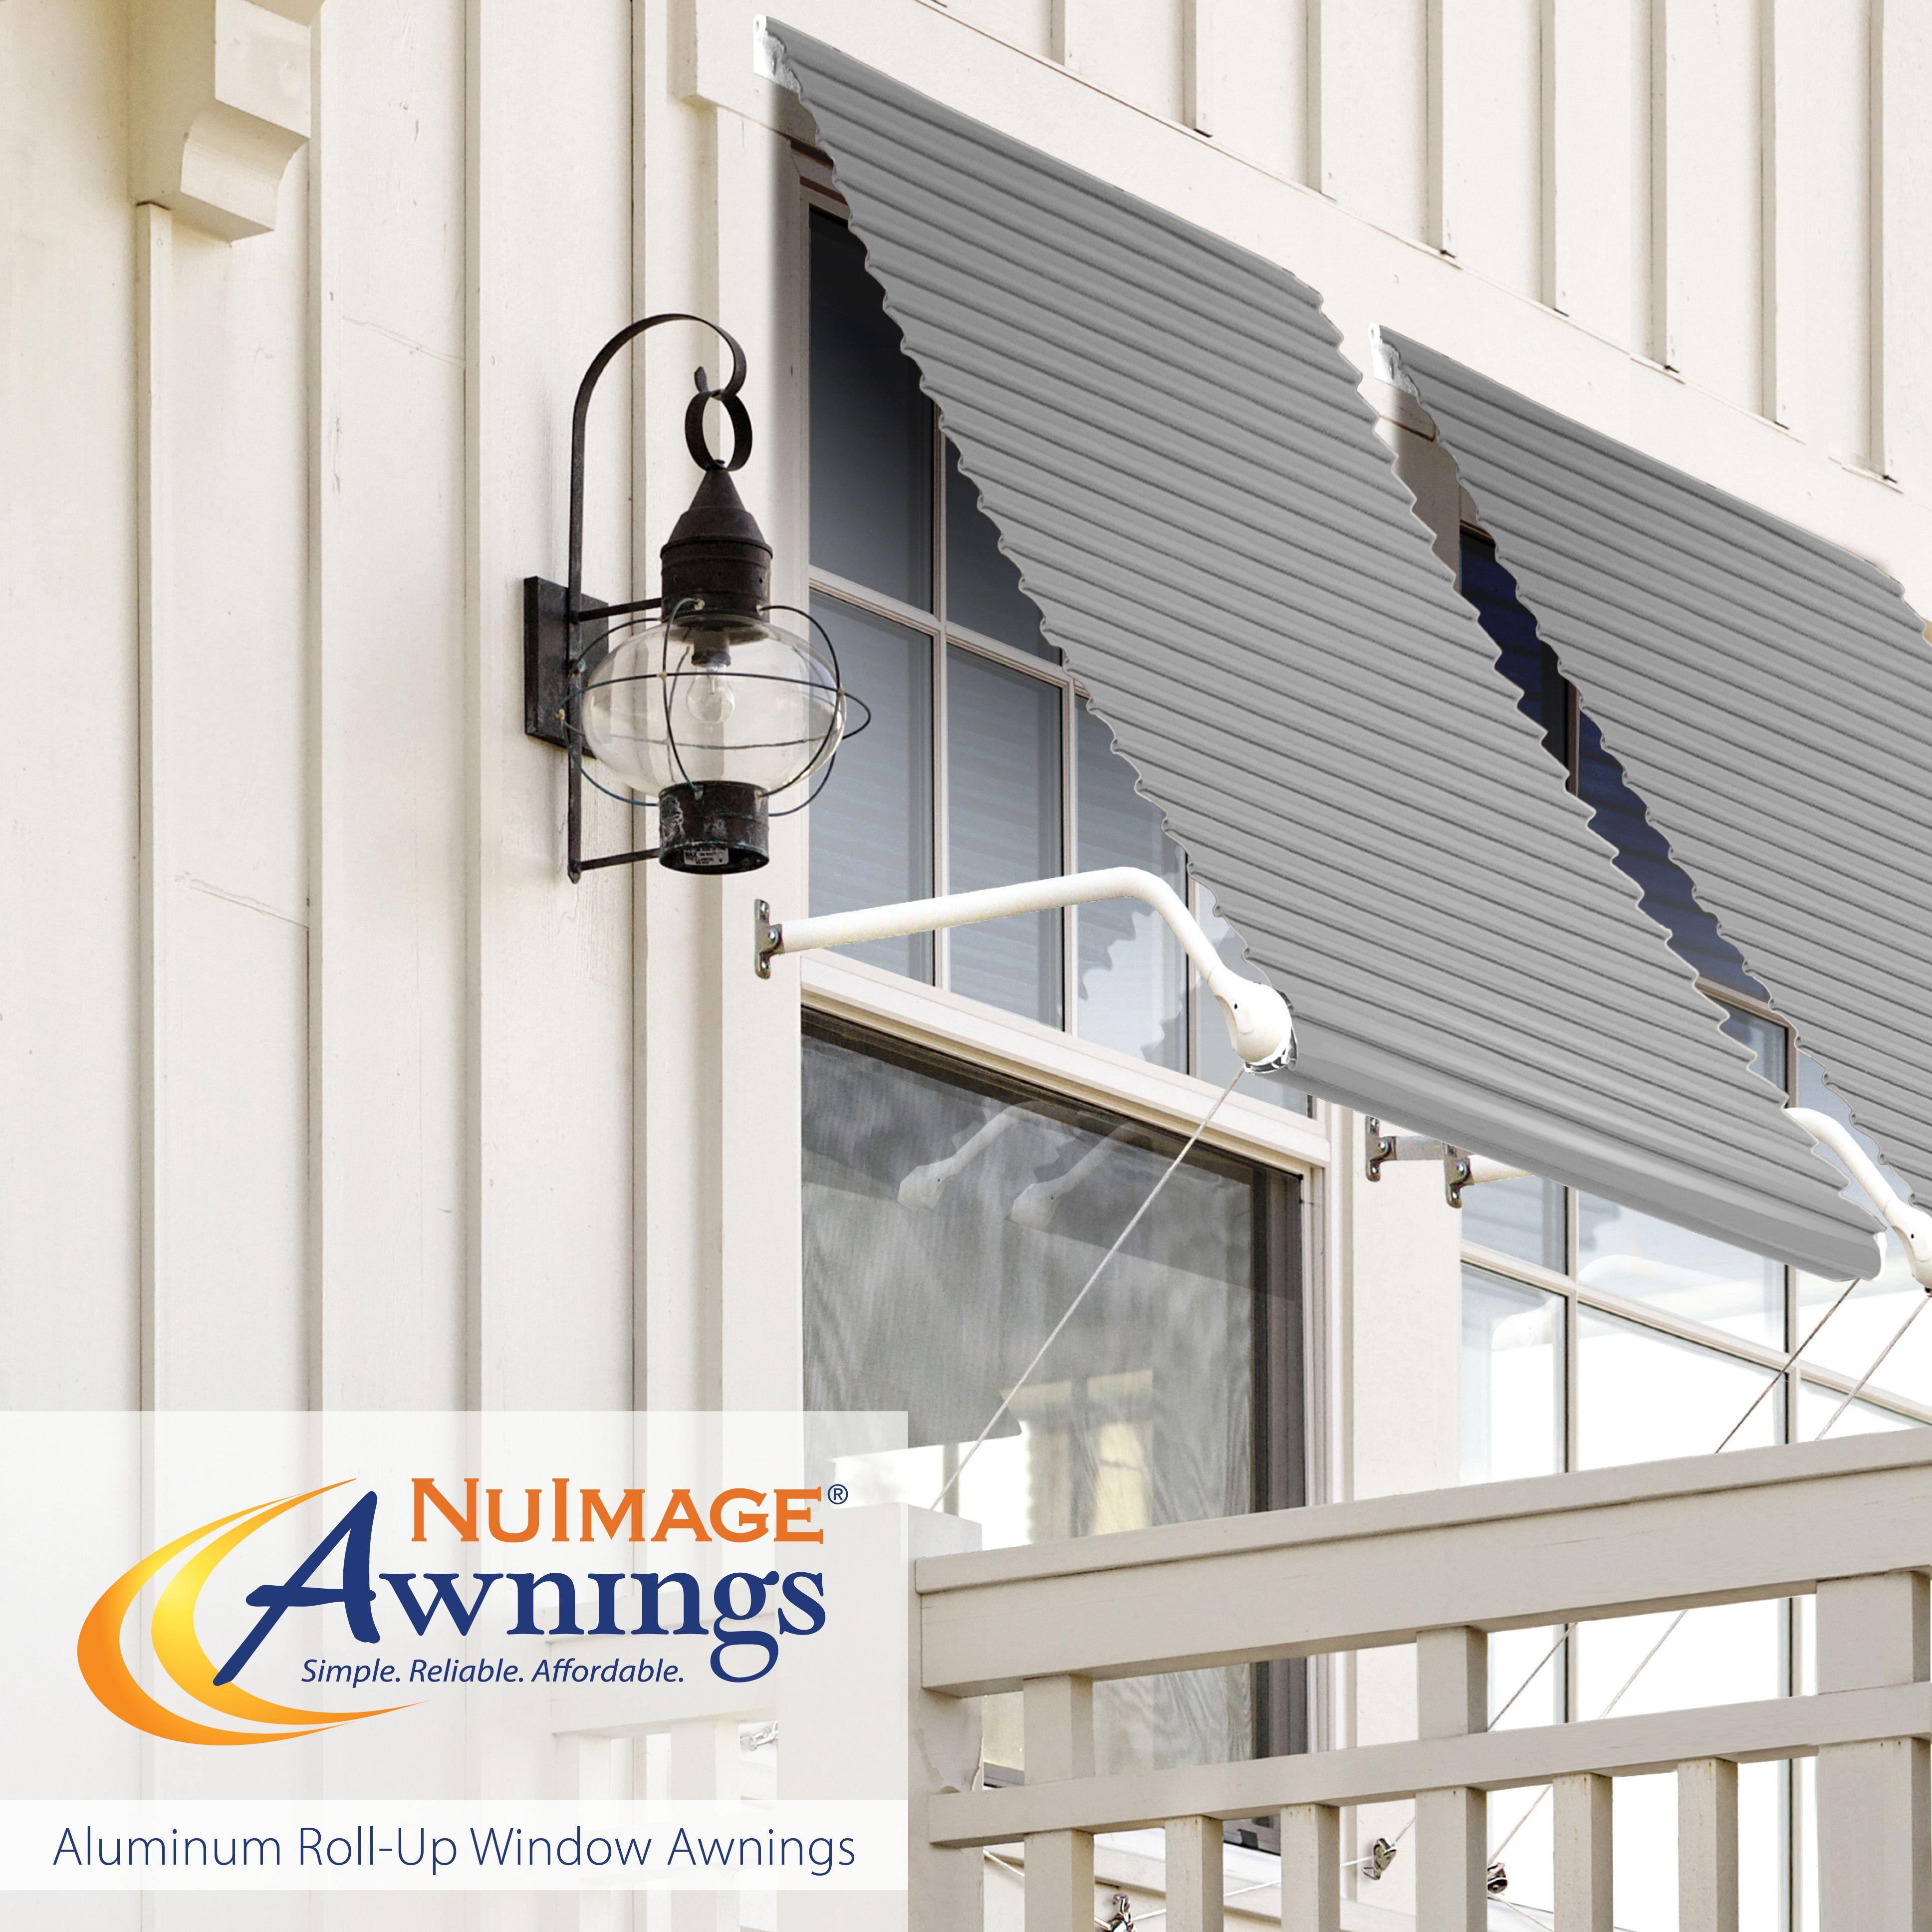 Nuimage Awnings Series 5500 Aluminum Roll Up Window Awnings Aluminum Awnings Porch Railing Kits Canopy Design